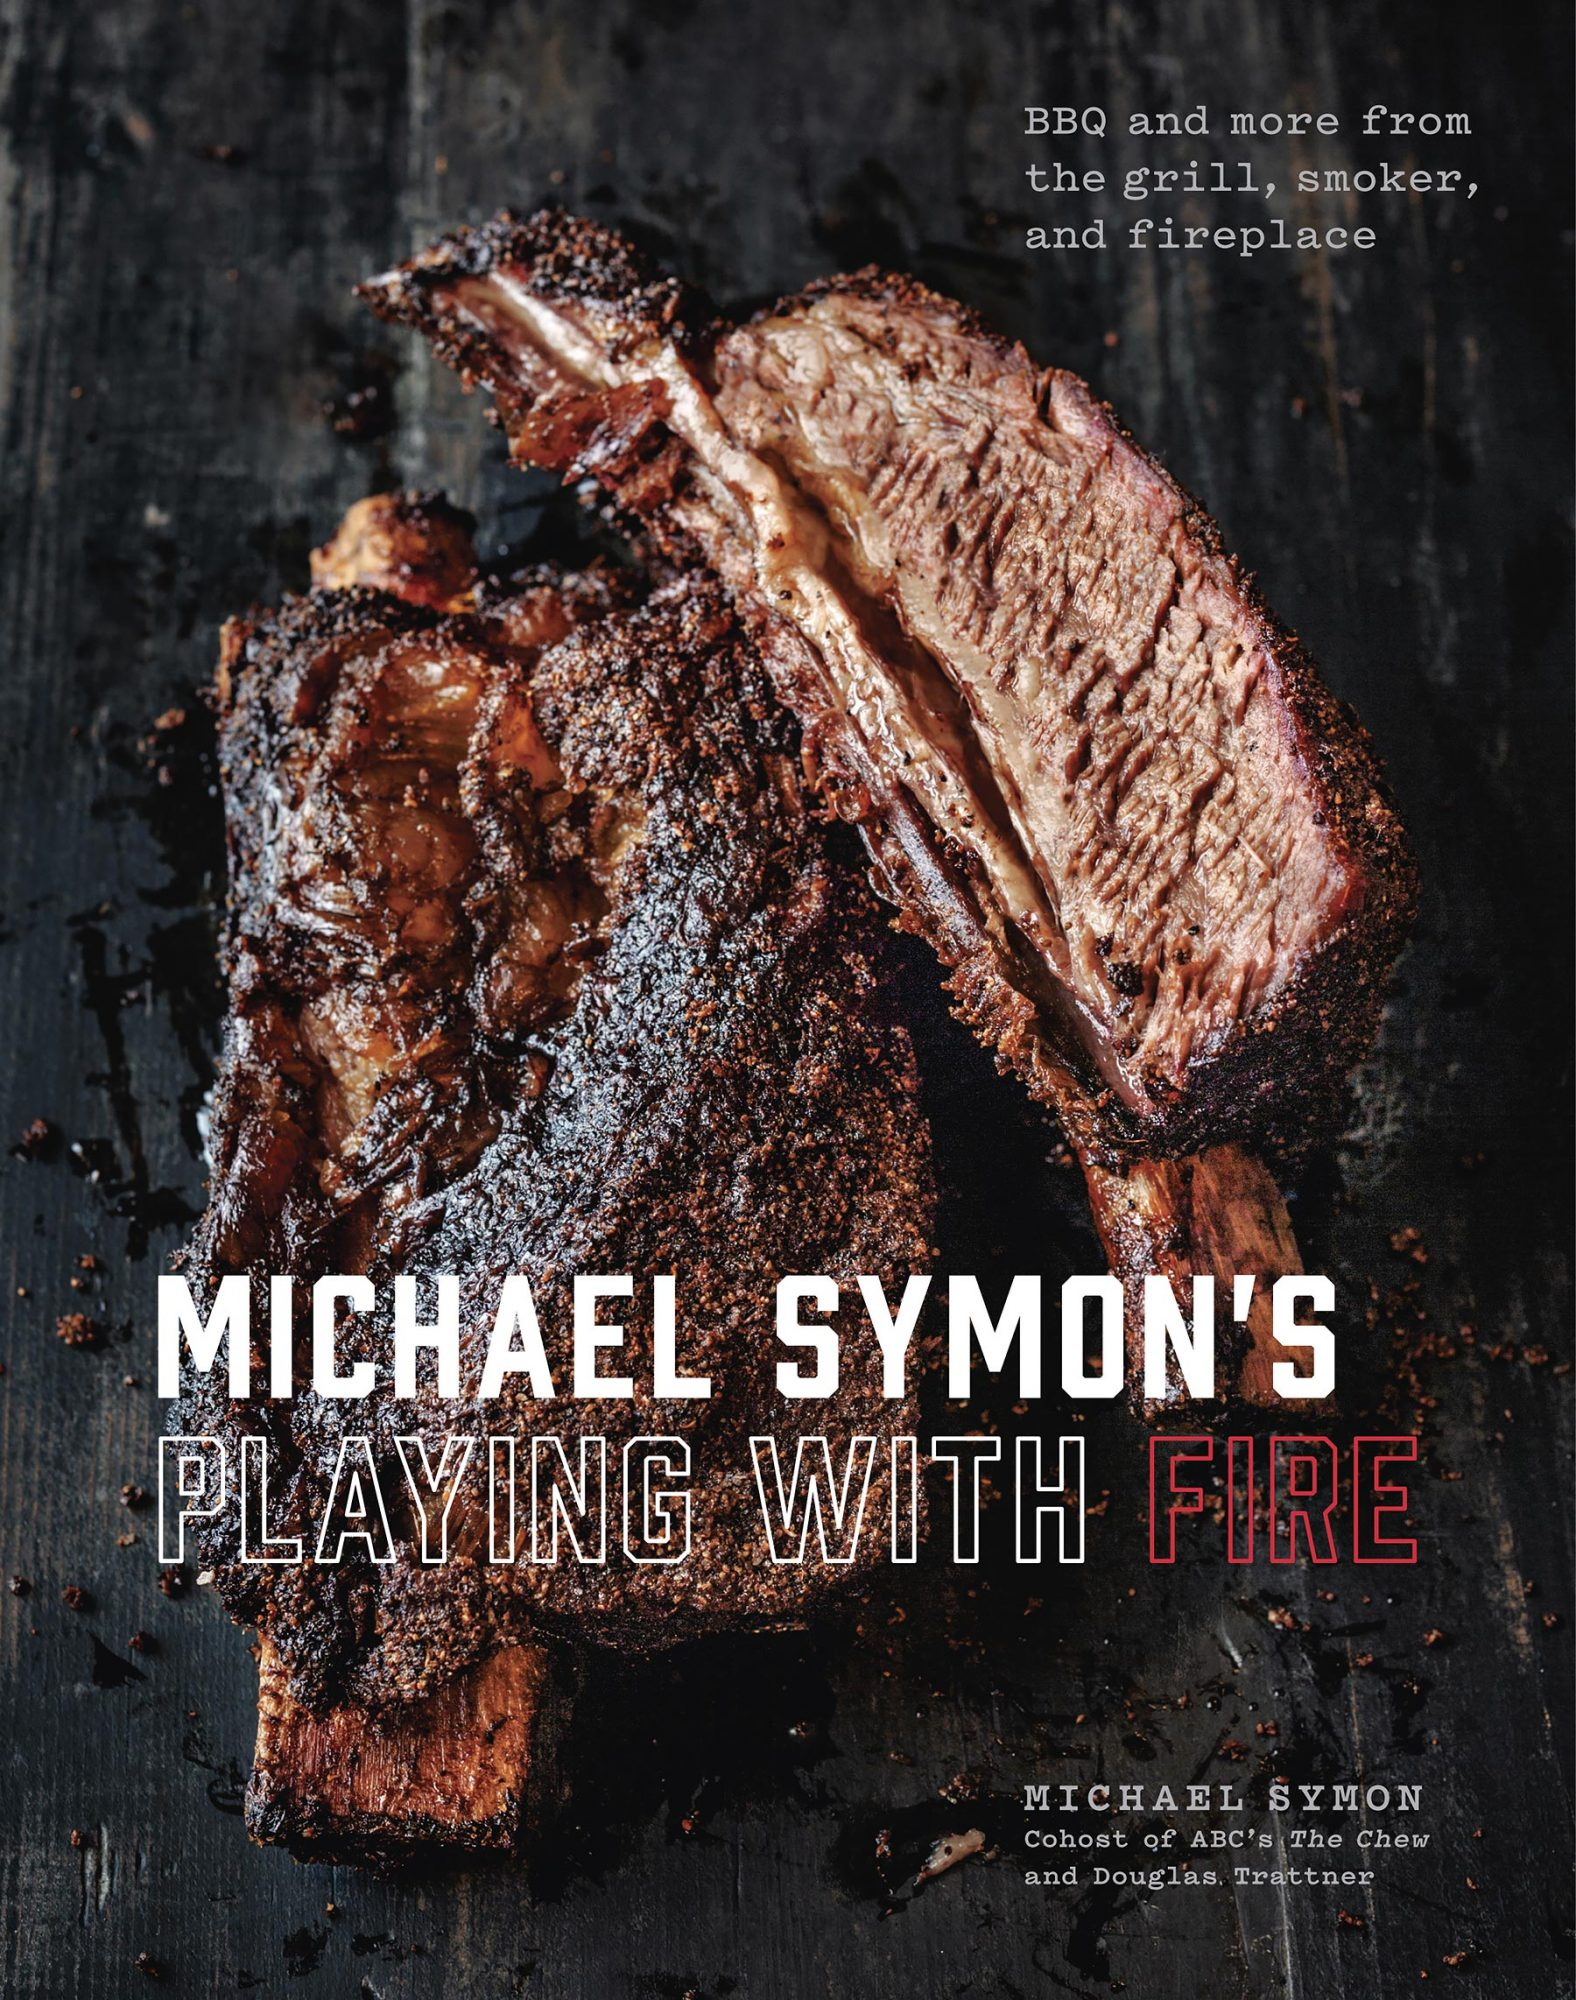 Michael Symon's Playing With Fire, by Michael Symon